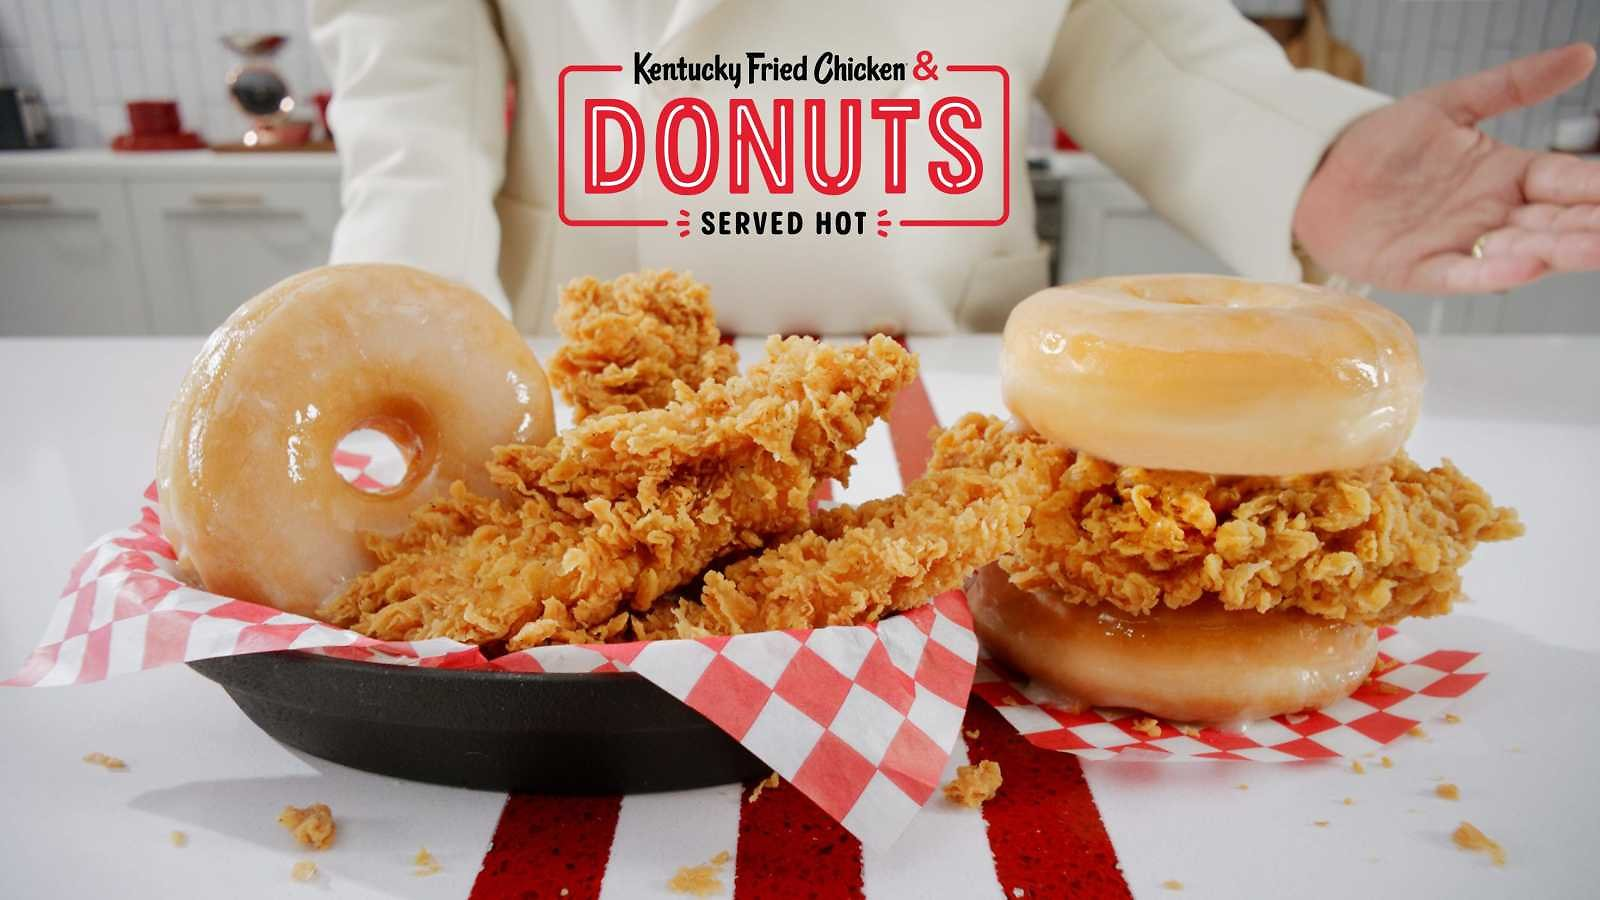 KFC Kentucky Fried Chicken & Donuts Sandwich and Basket Coming to Restaurants Nationwide